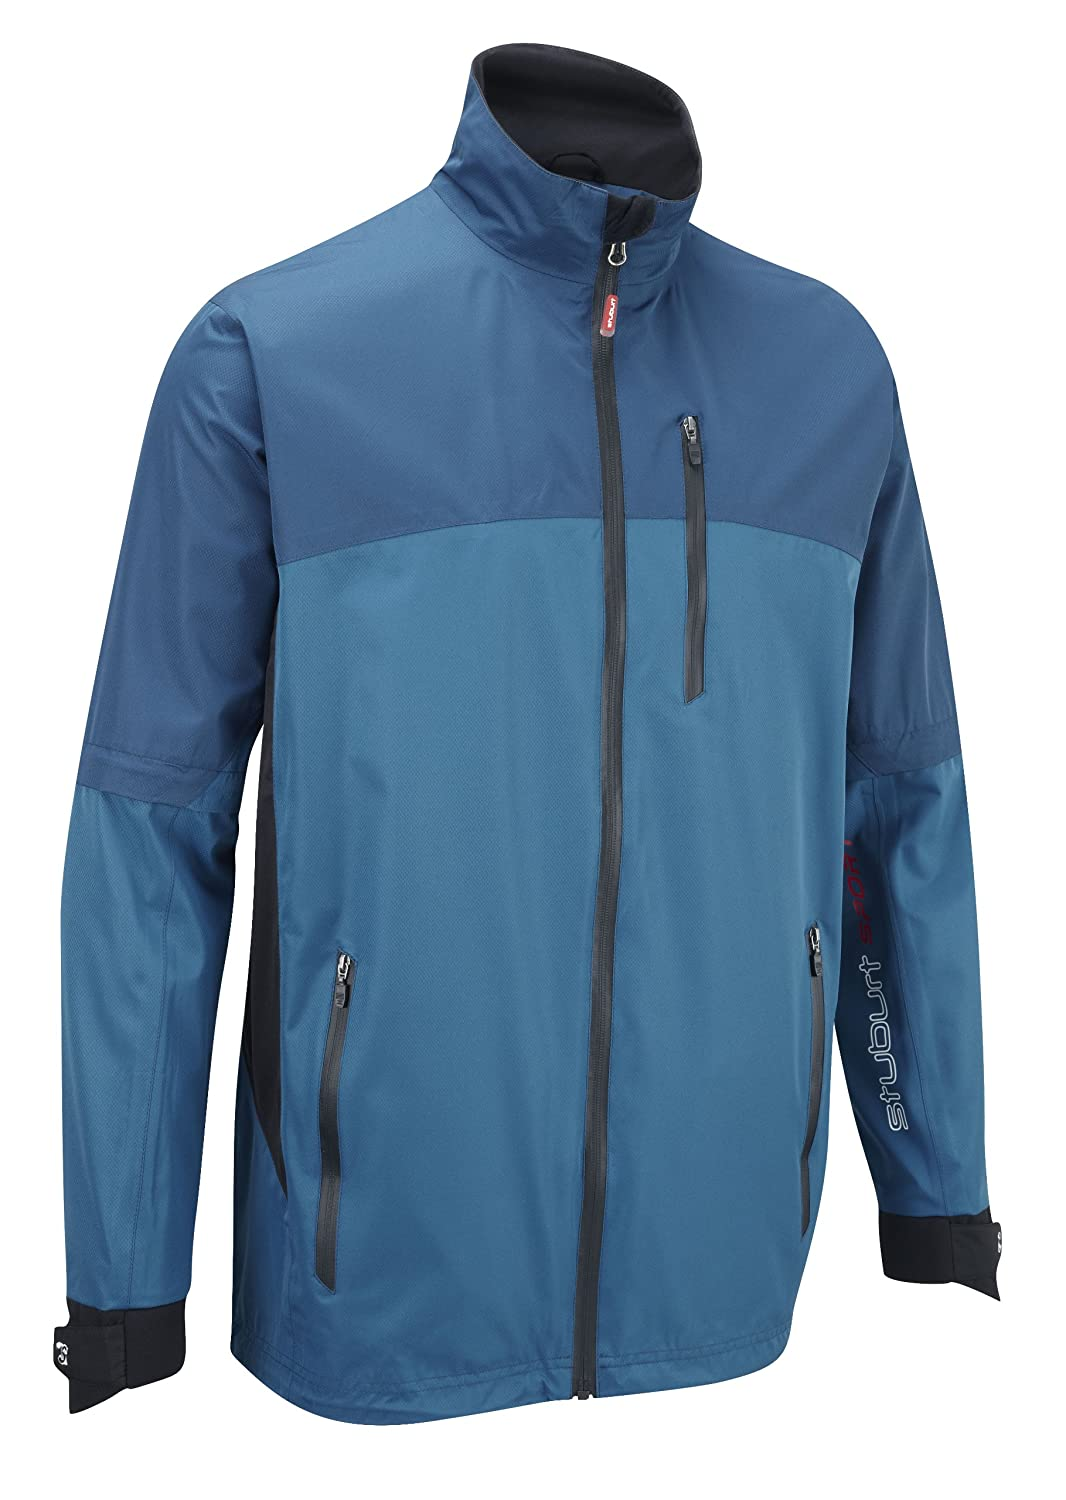 Stuburt Sport Men's Waterproof Jacket